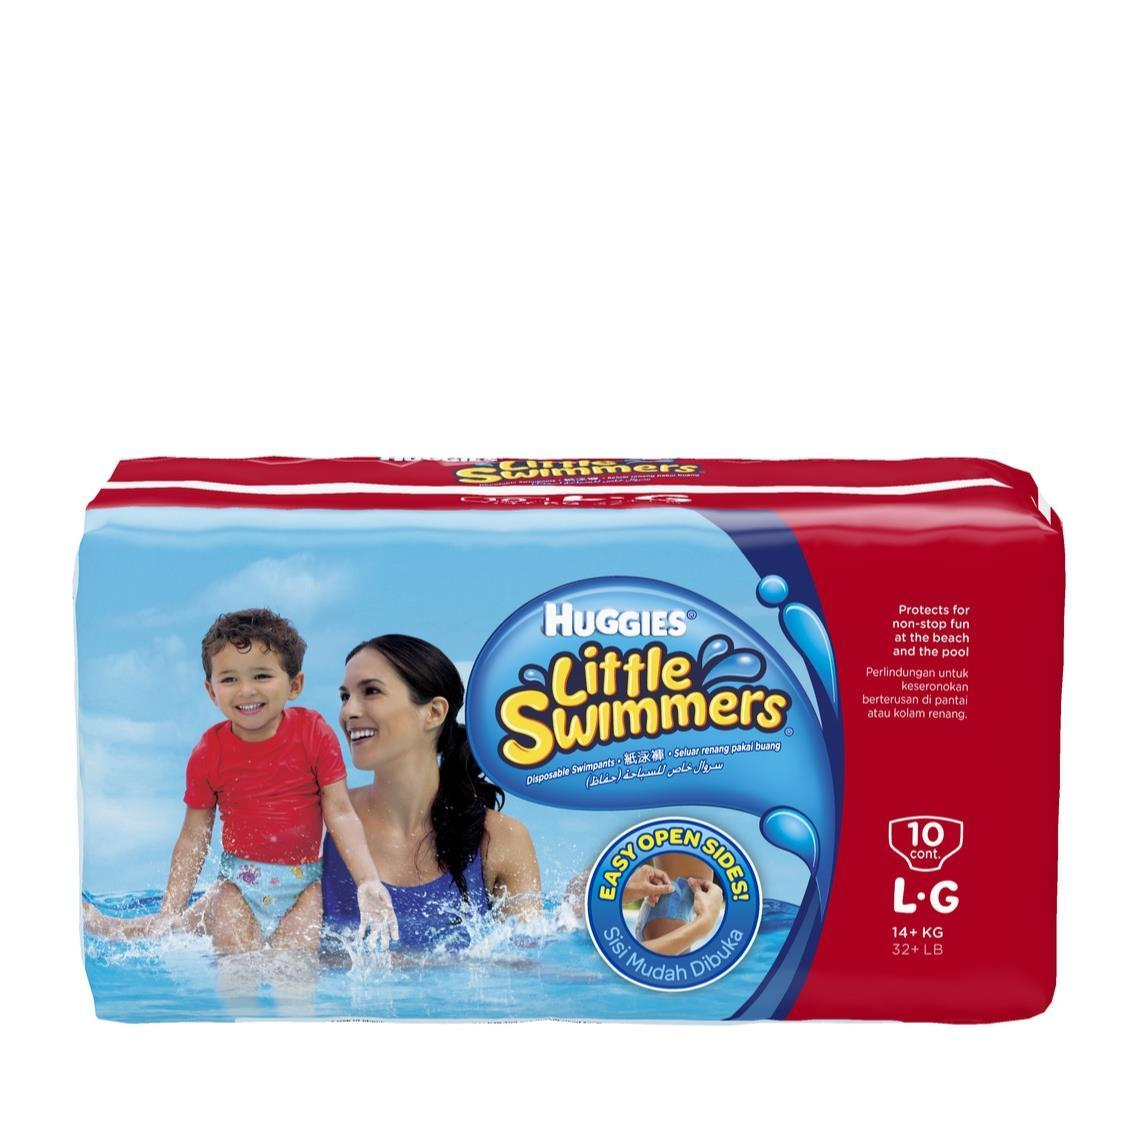 Huggies Little Swimmers 10s L